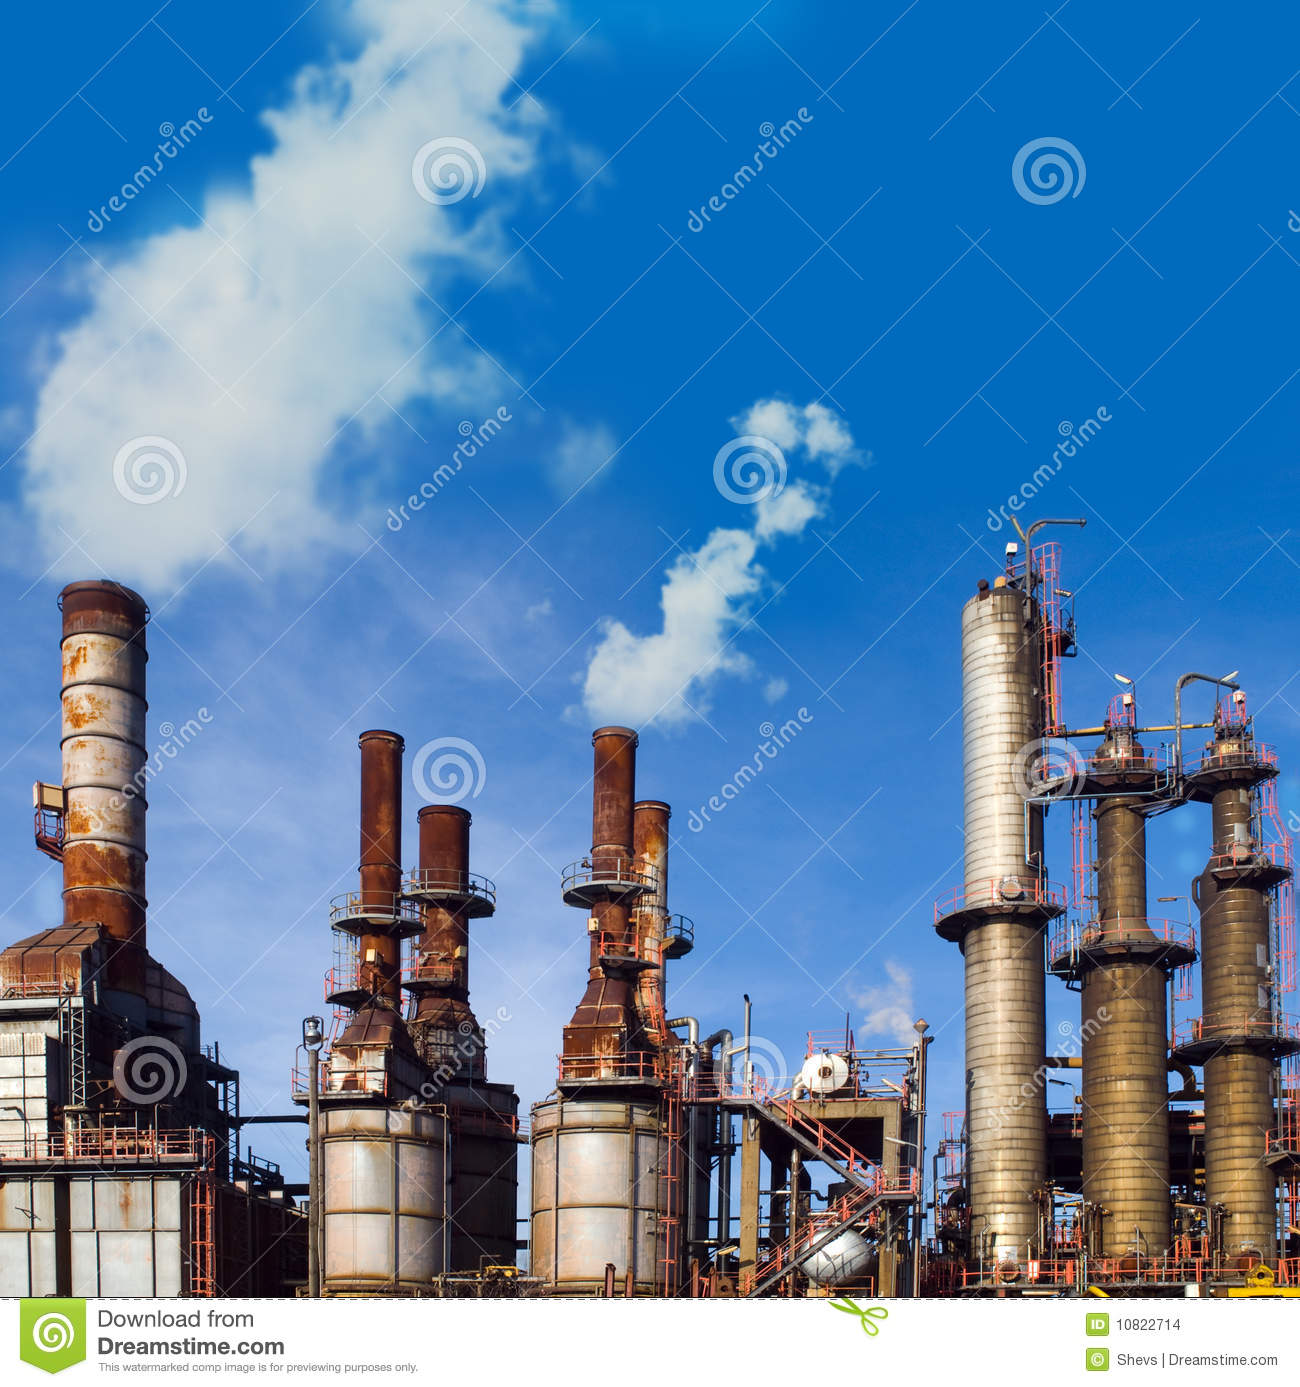 Together asian petrochemical industries the search